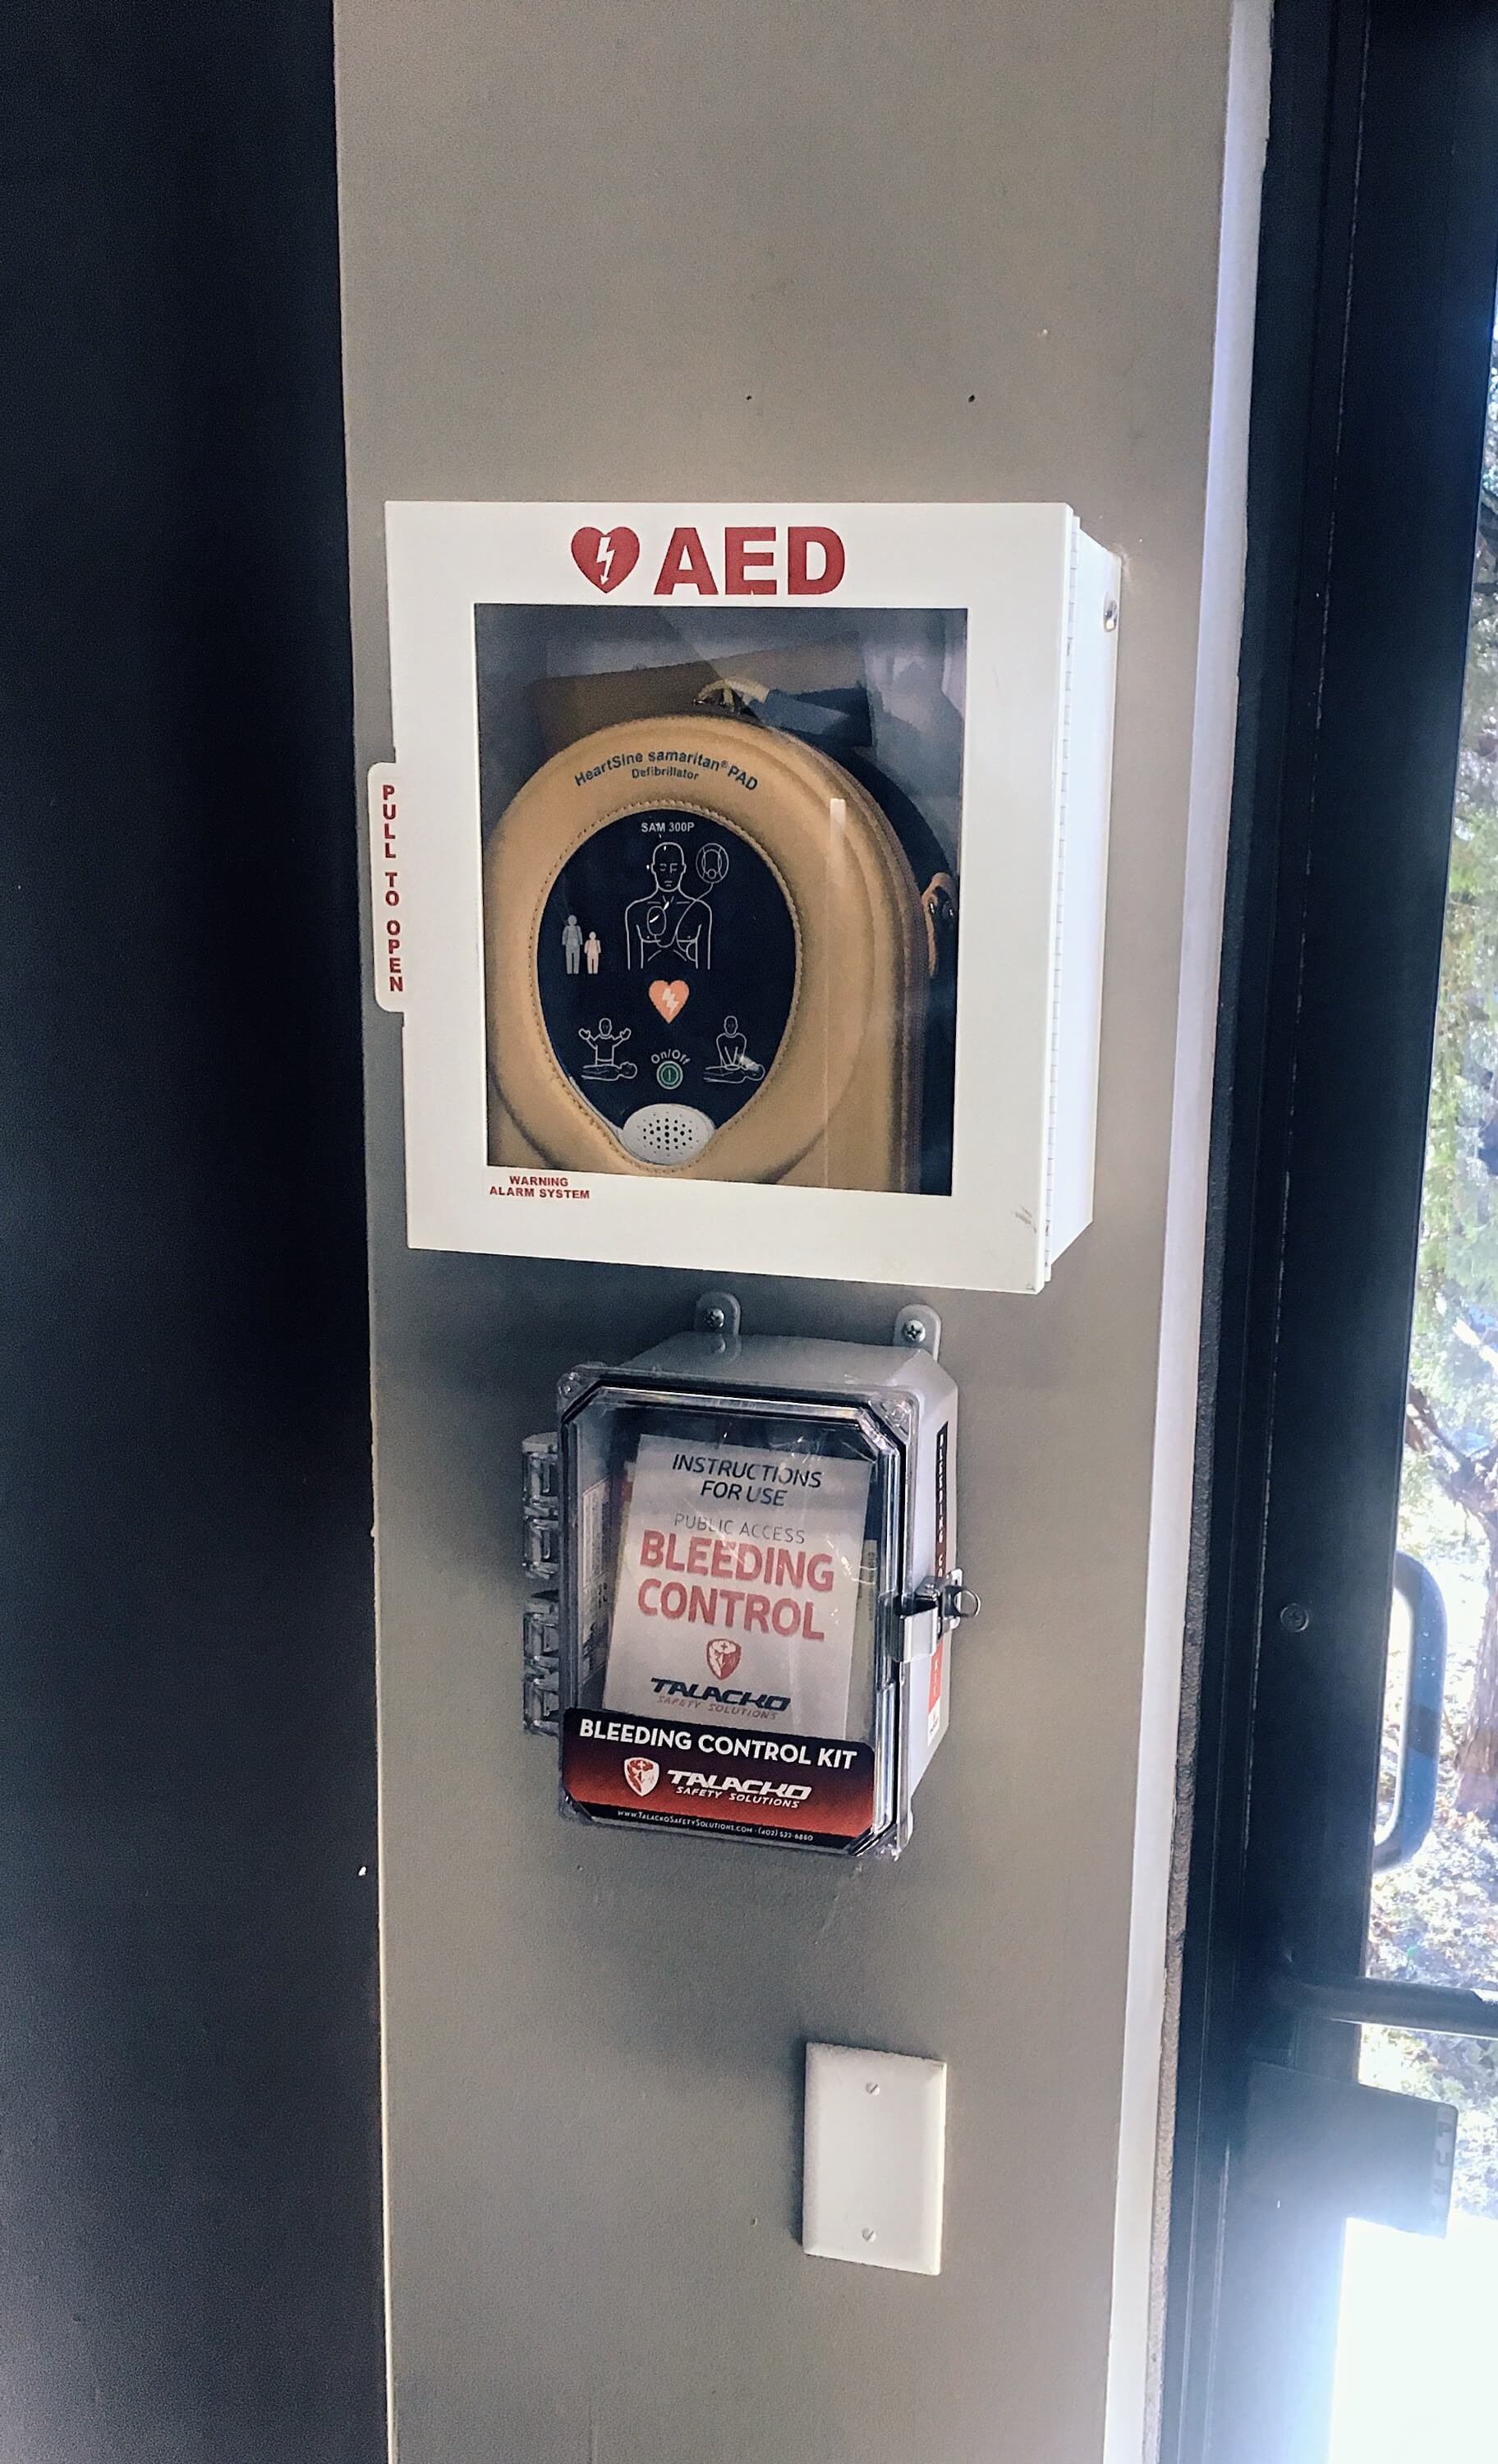 Public access bleeding control kits are often placed next to AED's in public facilities.